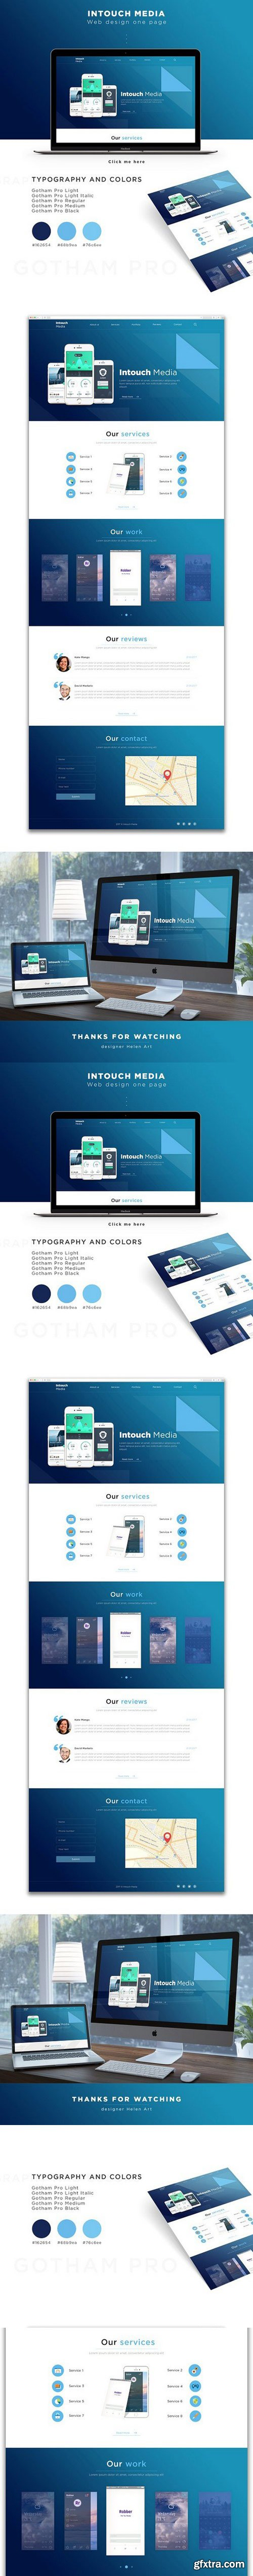 Intouch Media - Landing Page PSD